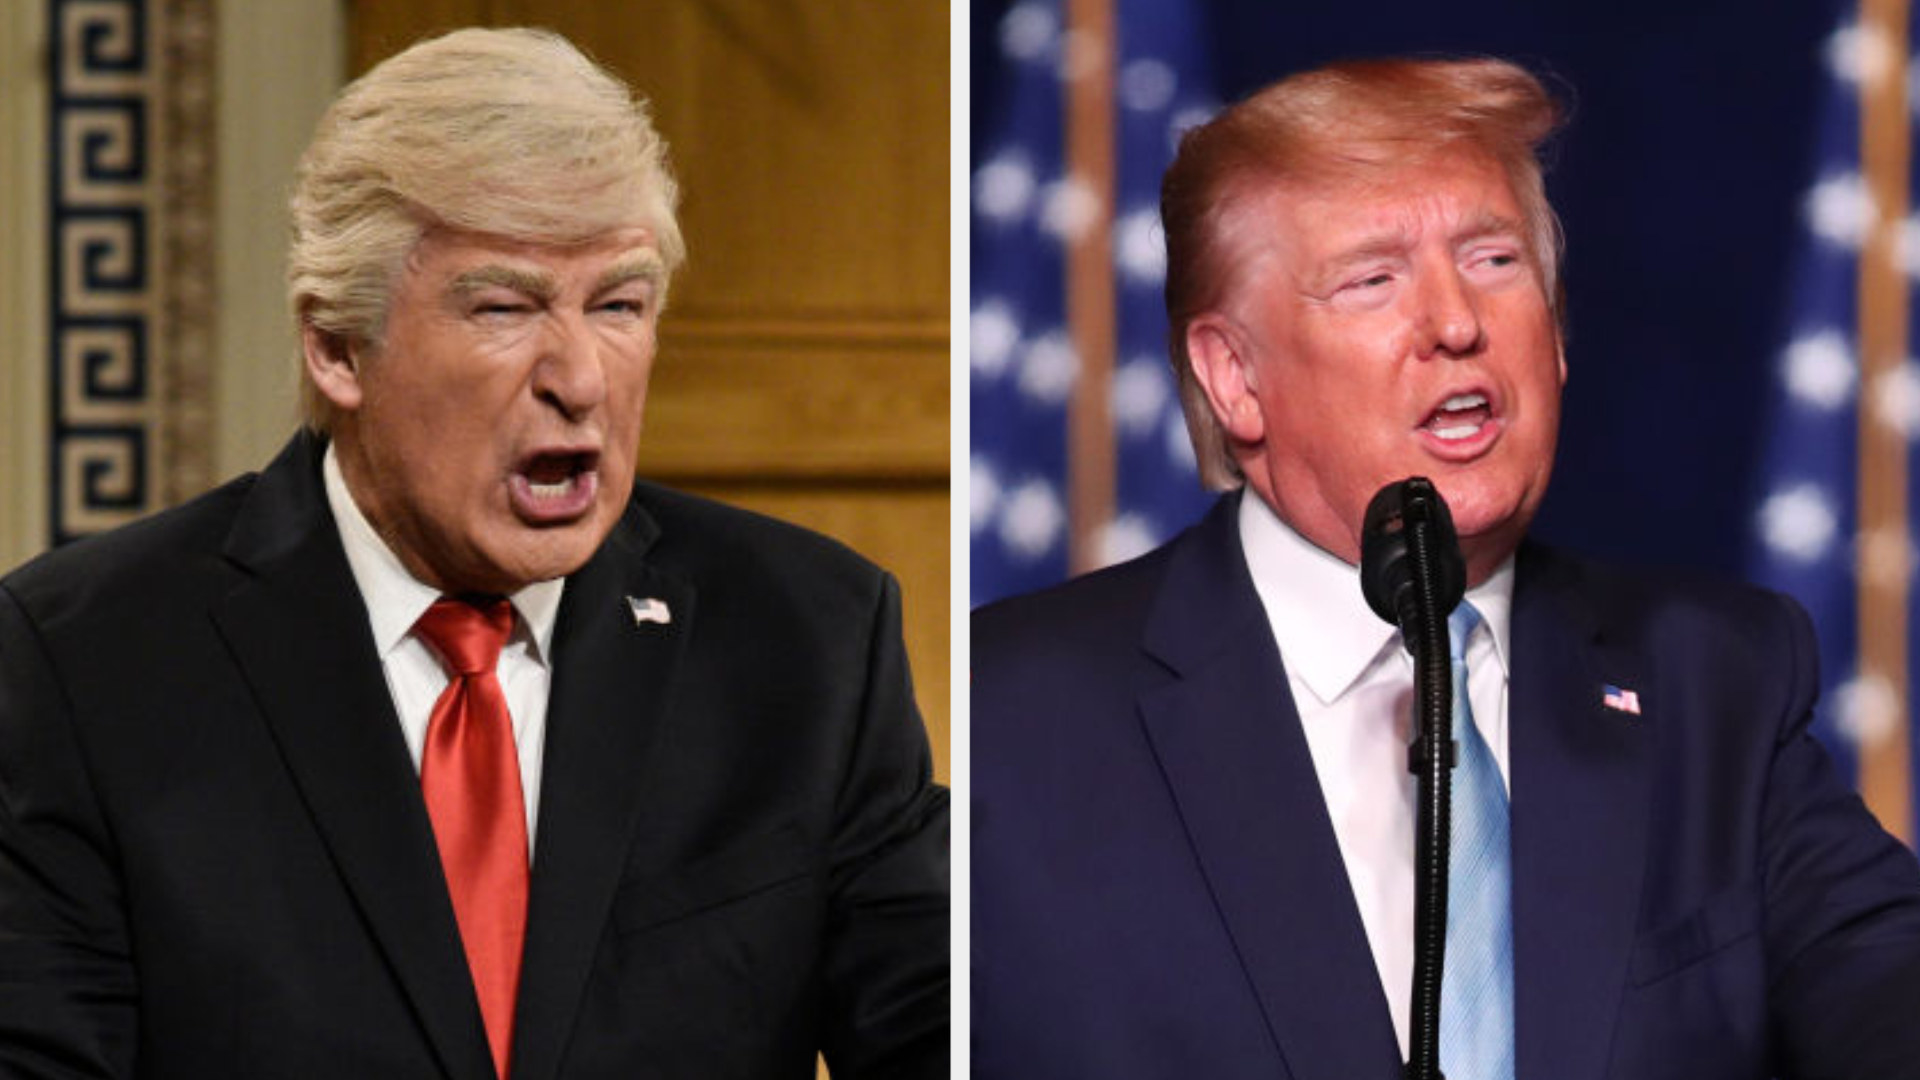 Alec Baldwin in a blonde comb over wig with orange skin side by side with Trump